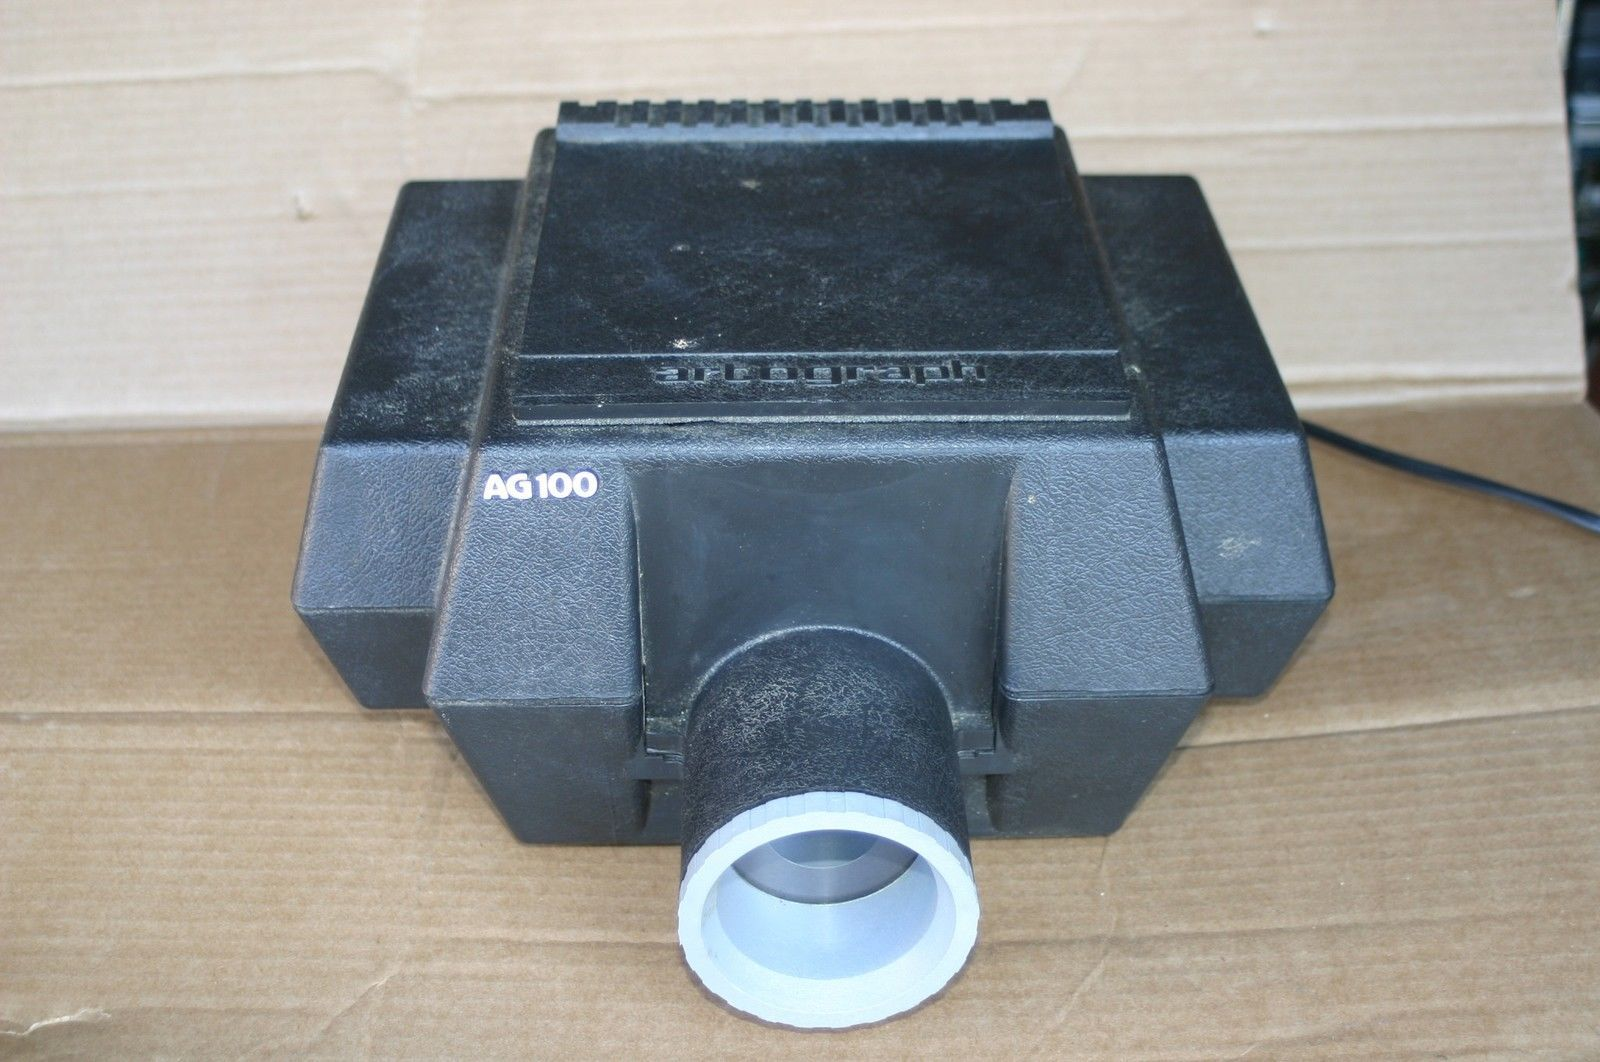 Artograph AG100 AG 100 Prism Image Projector Opaque